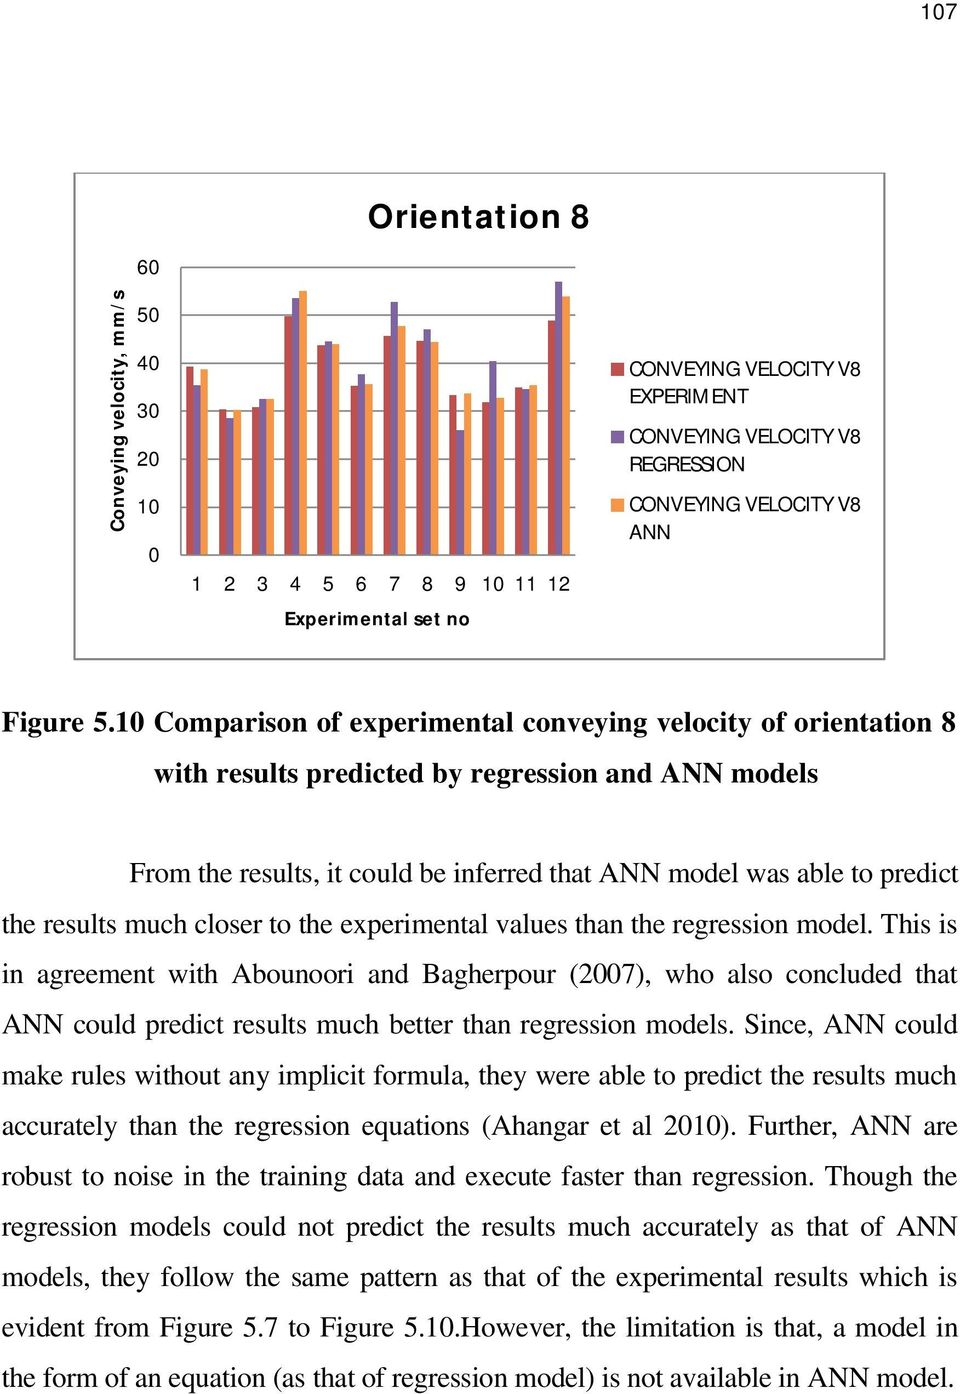 10 Comparison of experimental conveying velocity of orientation 8 with results predicted by regression and ANN models From the results, it could be inferred that ANN model was able to predict the